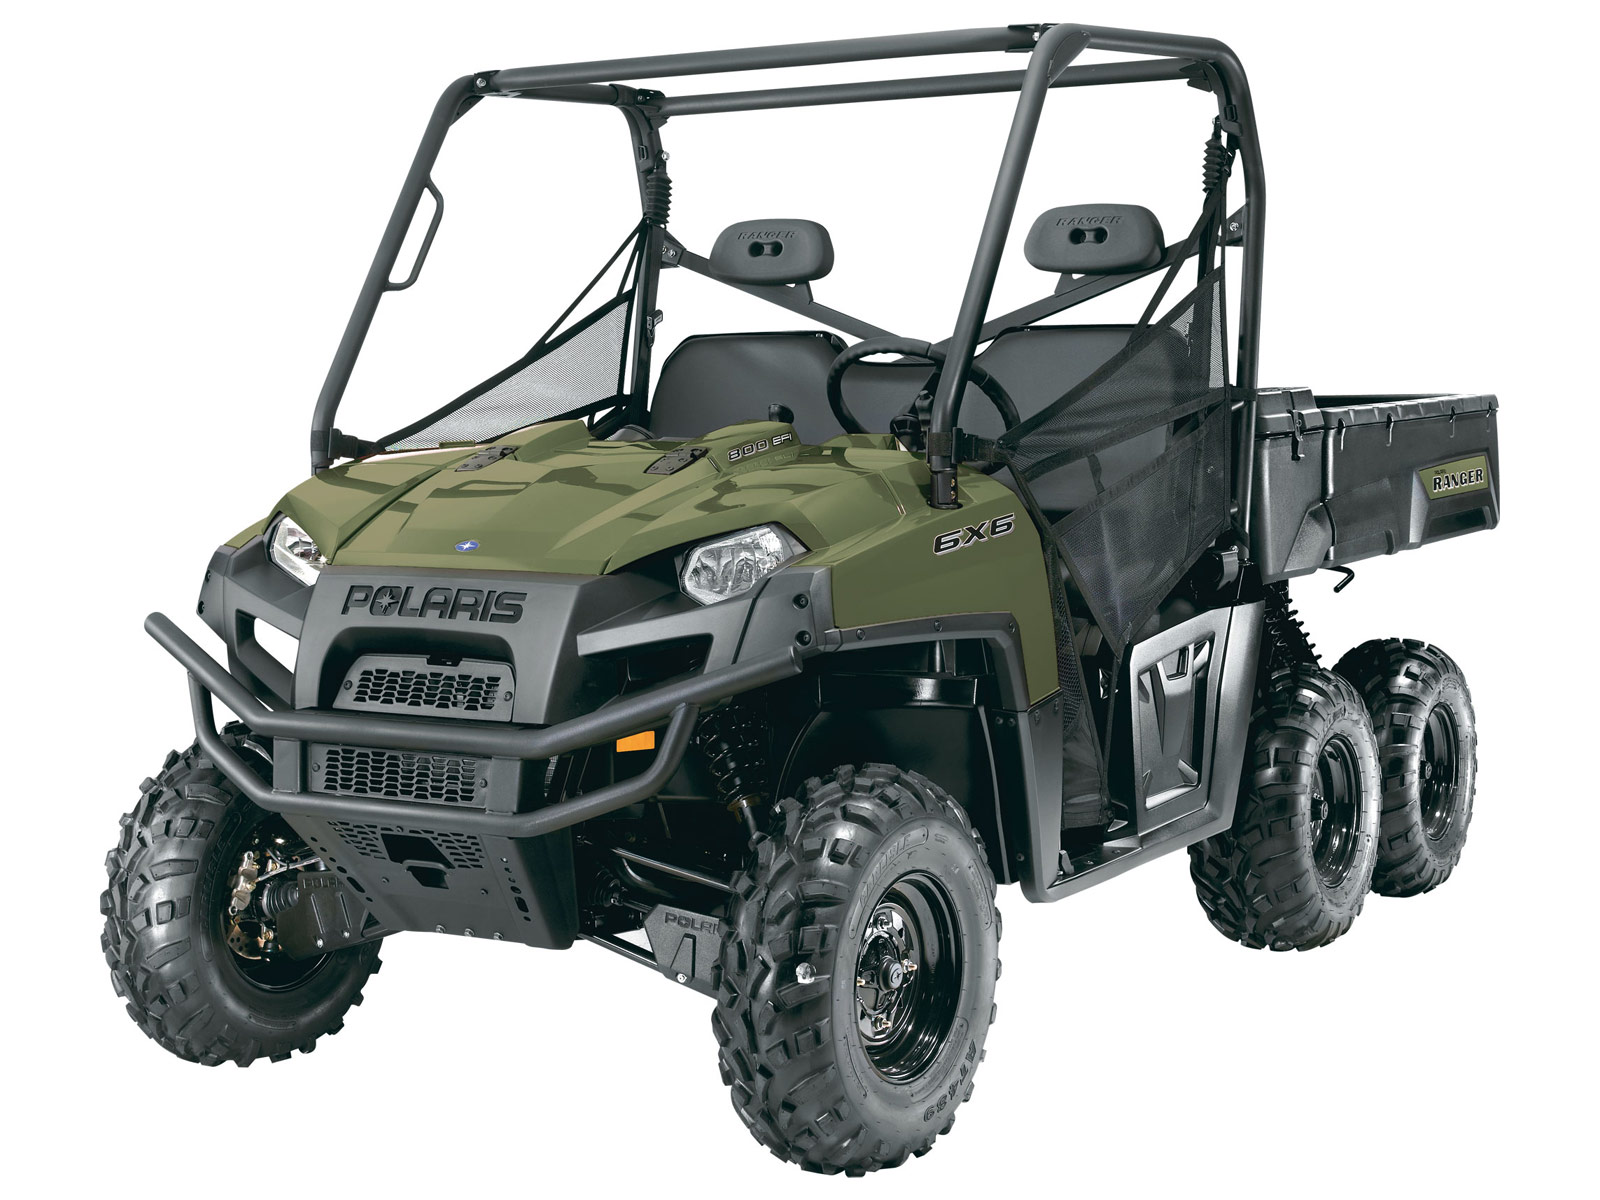 2012 polaris ranger 6x6 800 insurance information. Black Bedroom Furniture Sets. Home Design Ideas